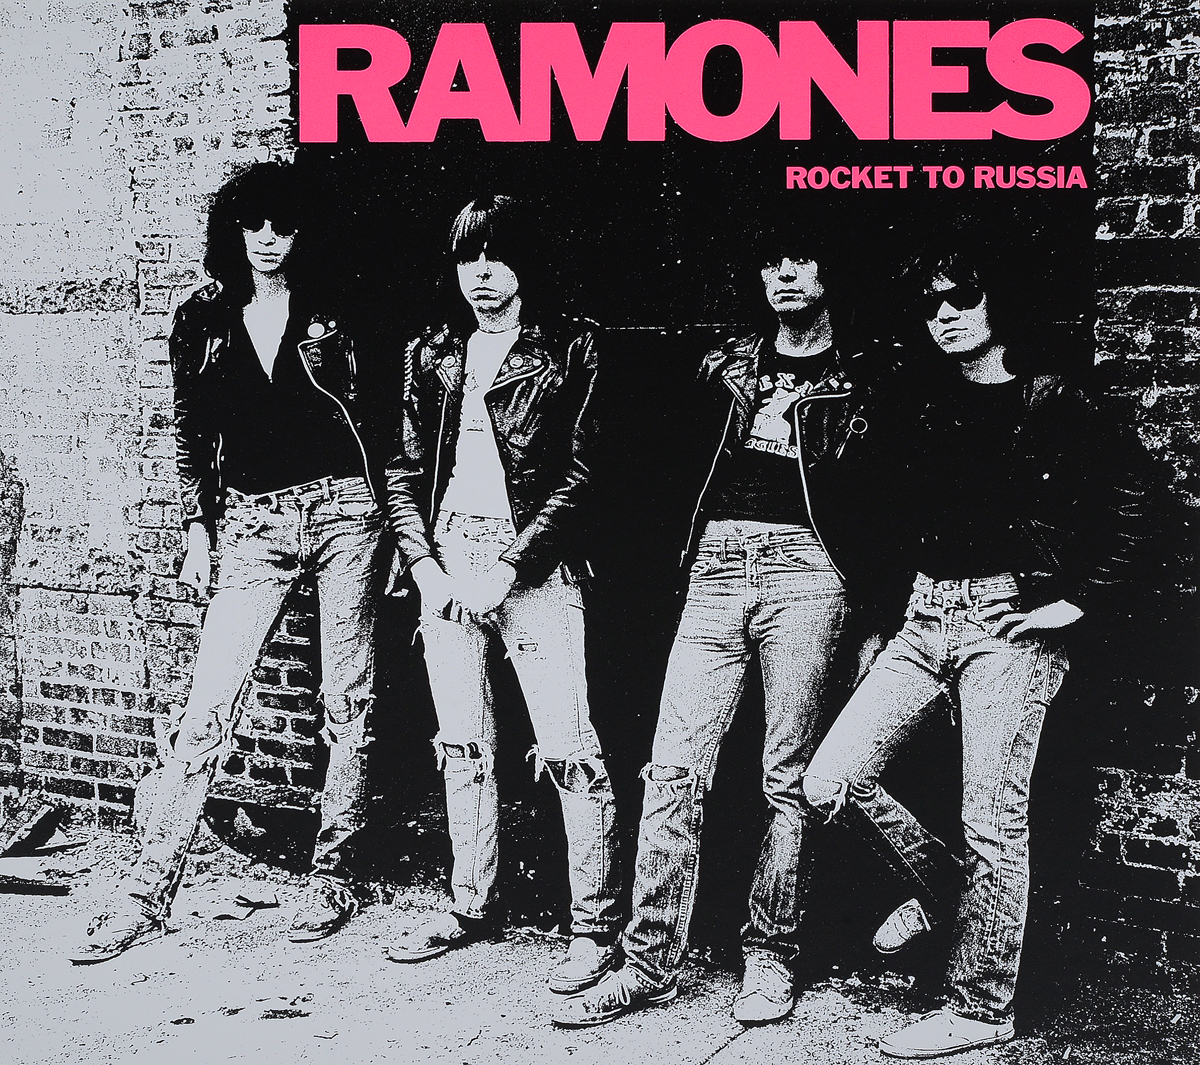 The Ramones Ramones. Rocket To Russia (40th Anniversary Deluxe Edition) (3 CD + LP) грегори портер gregory porter take me to the alley deluxe edition cd dvd